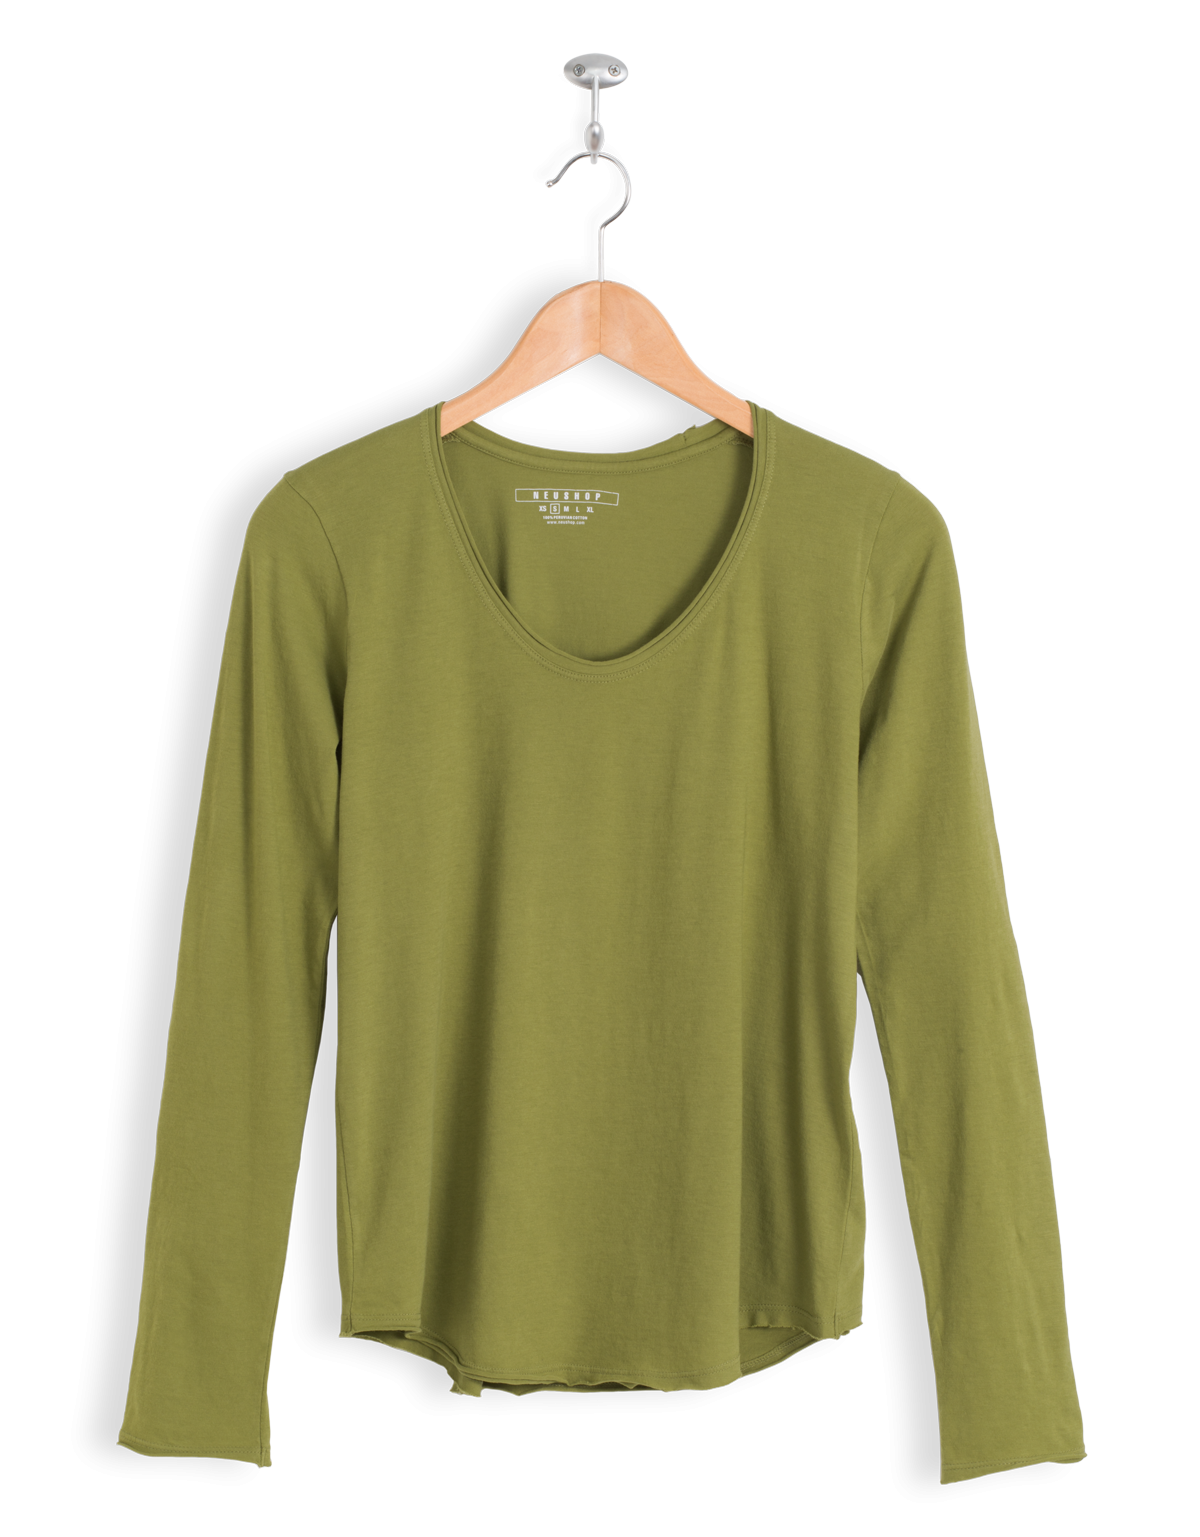 Neushop Women's Eero 100% Cotton Long Sleeve Premium T-Shirt